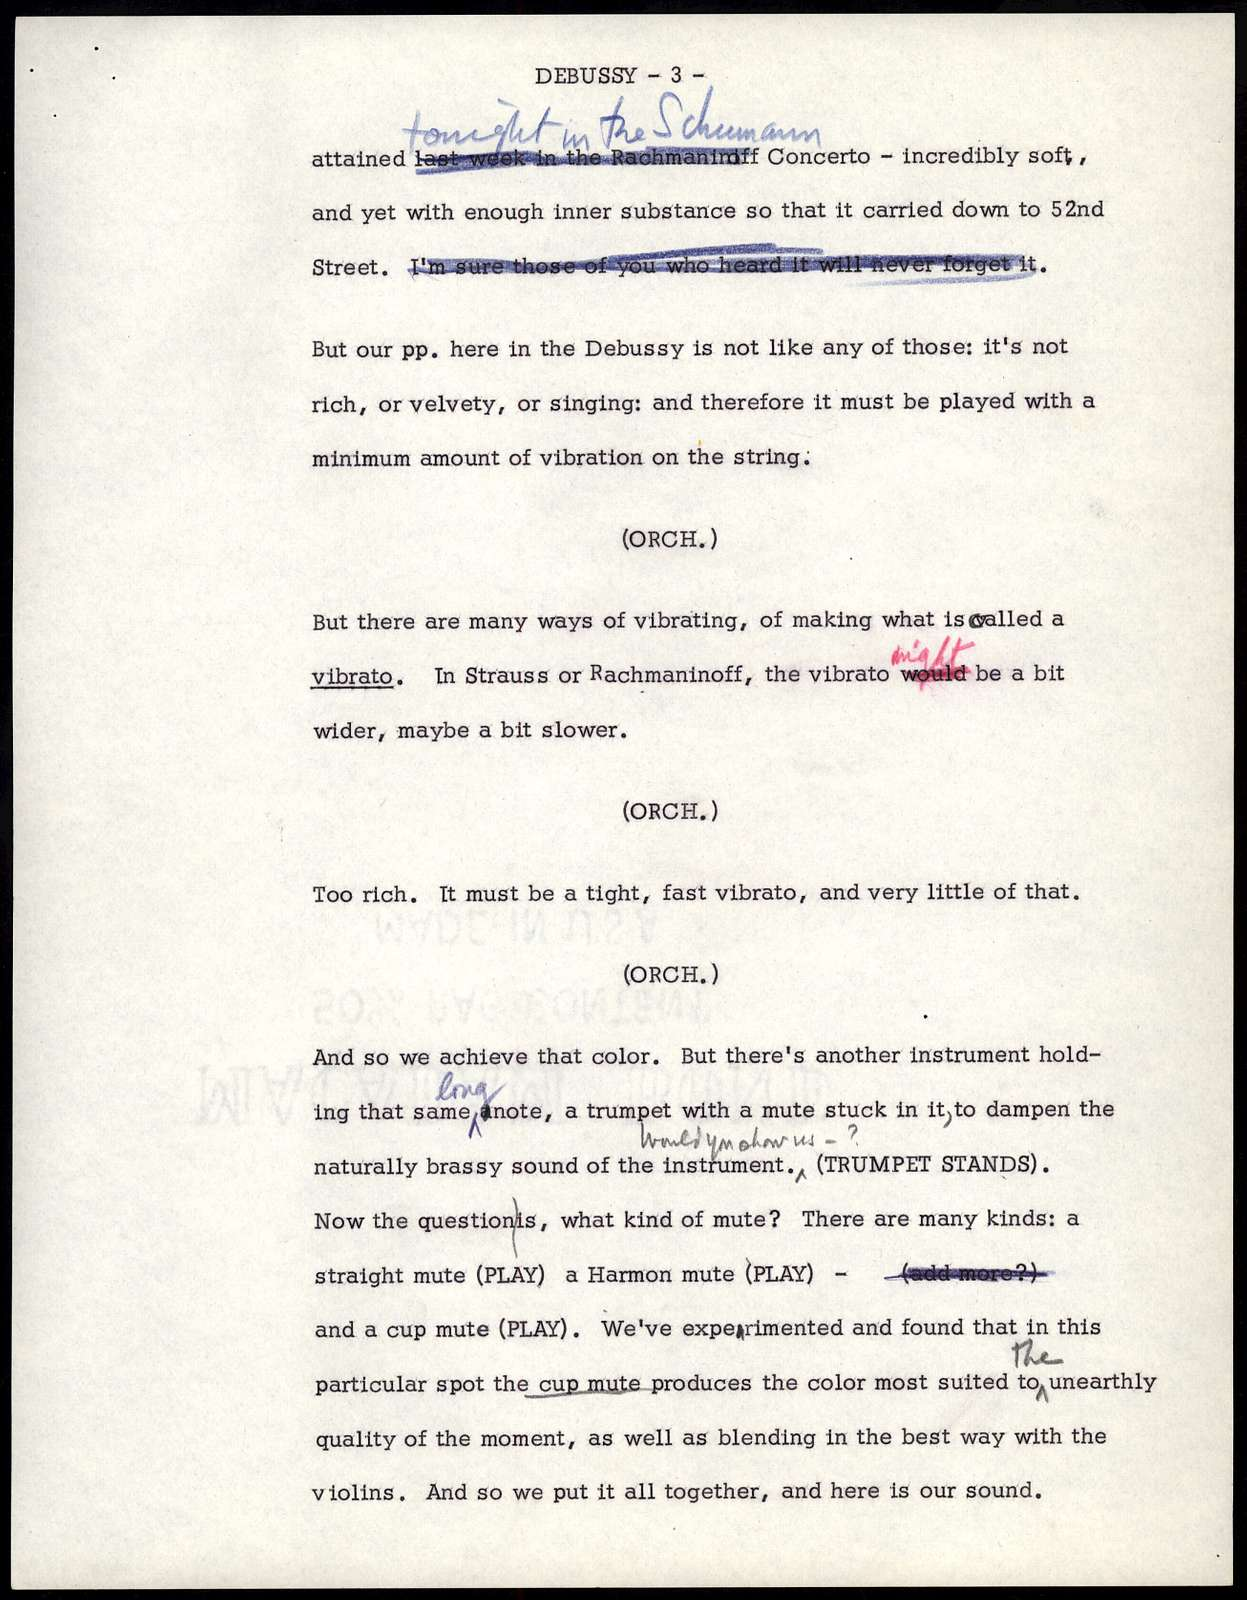 Thursday Evening Previews Scripts: Americans/Debussy [typescripts with emendations in red, blue & black pencil]